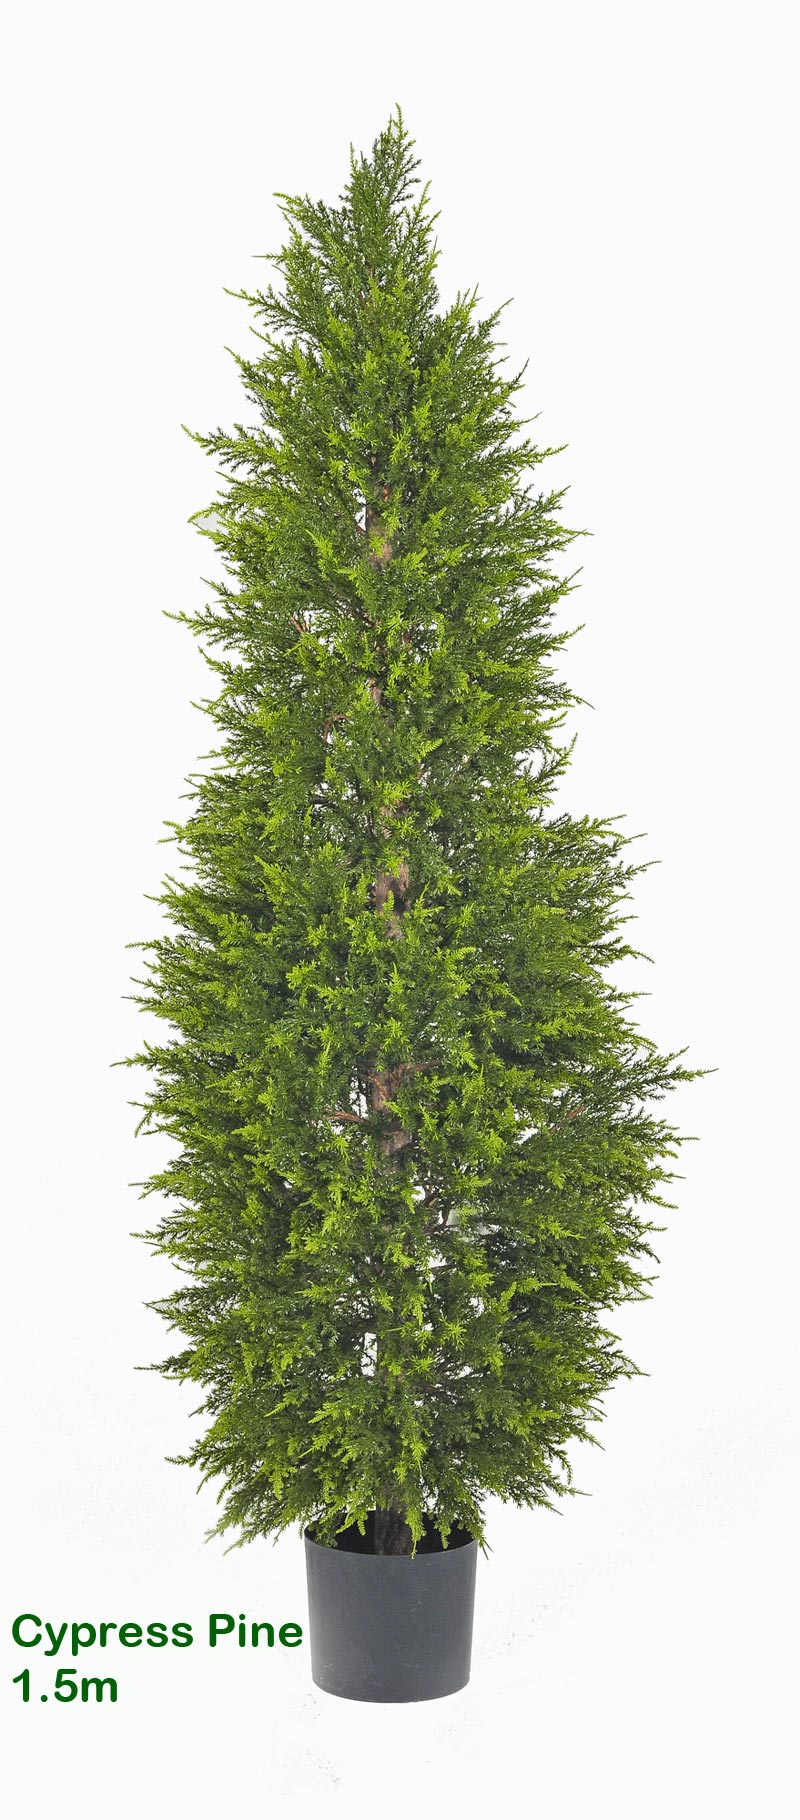 Articial Plants - Cypress Pine 2.1M